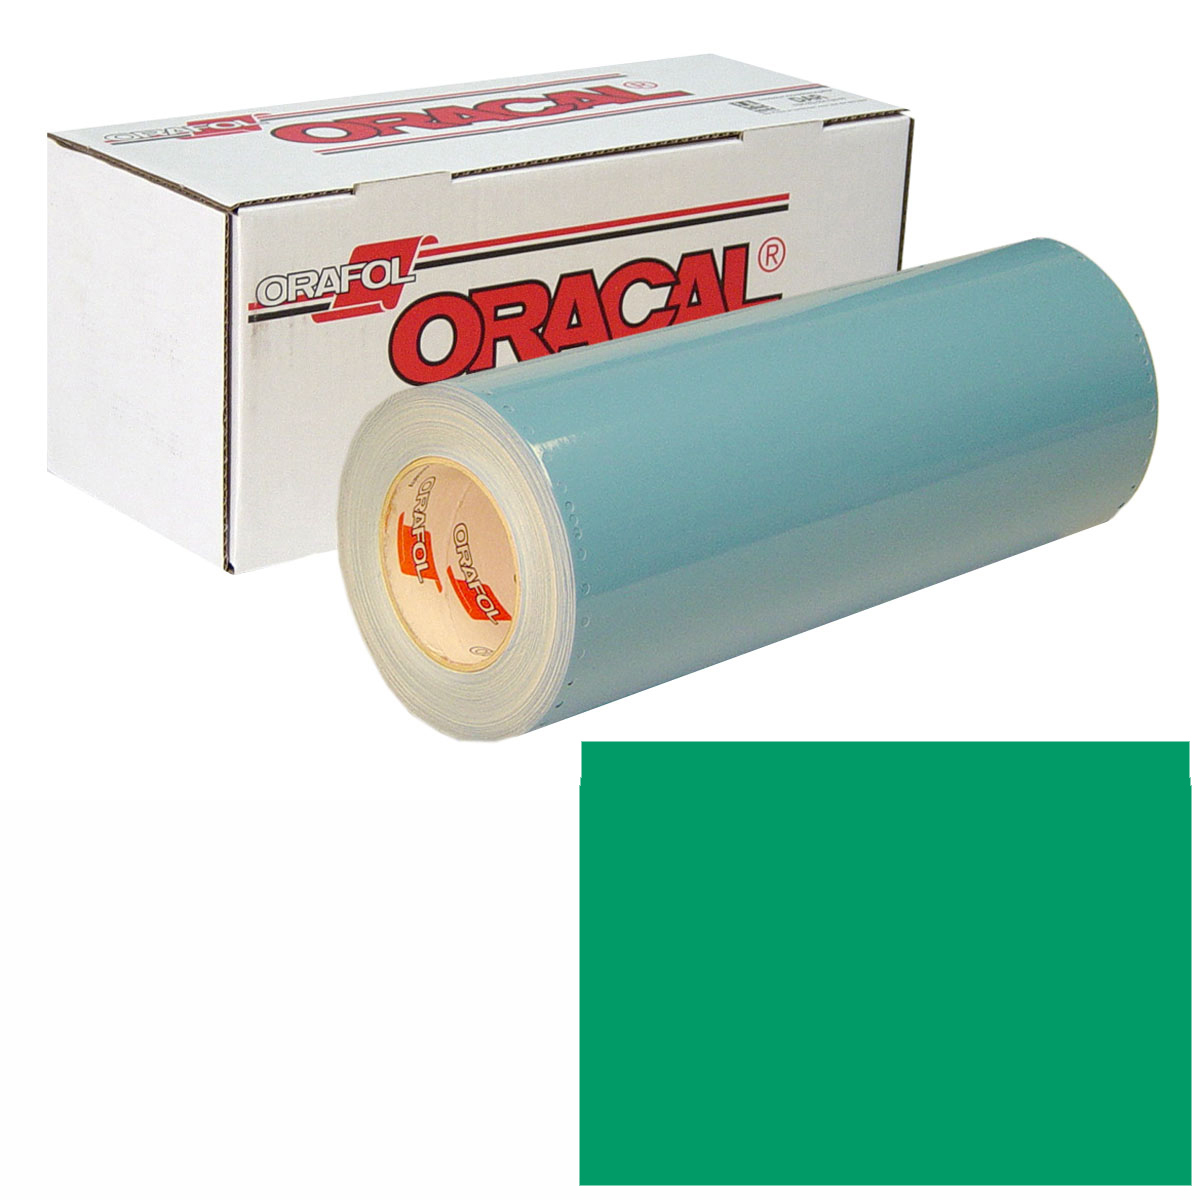 ORACAL 751 Unp 24In X 50Yd 062 Light Green